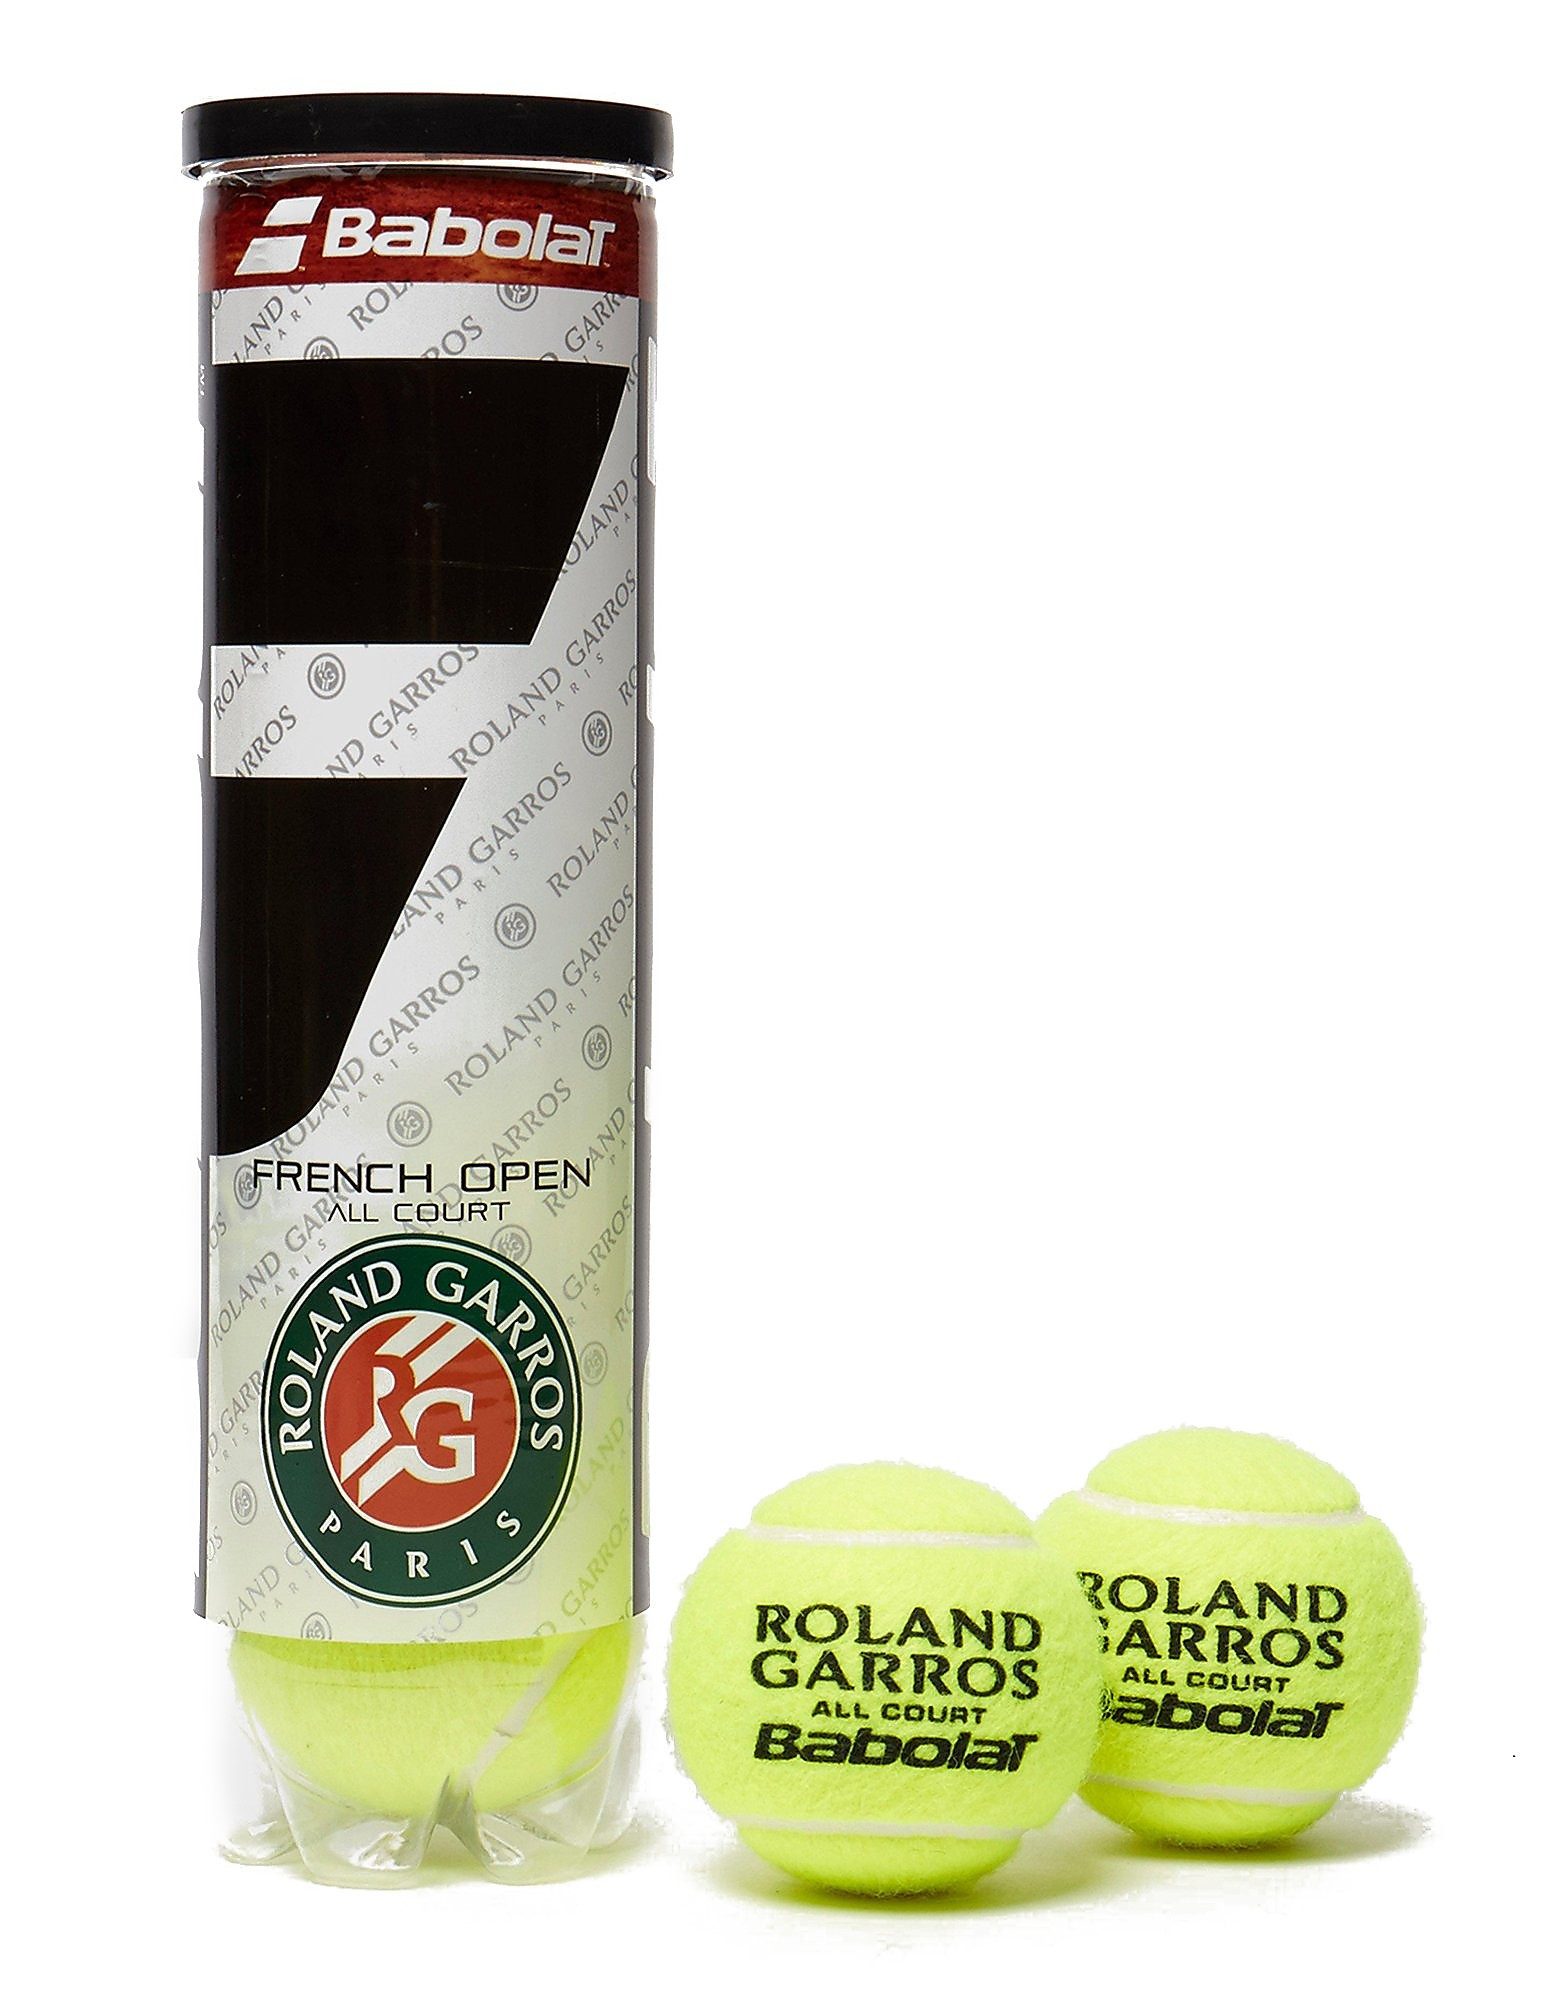 Babolat French Open Tennis Balls (Can of 4)